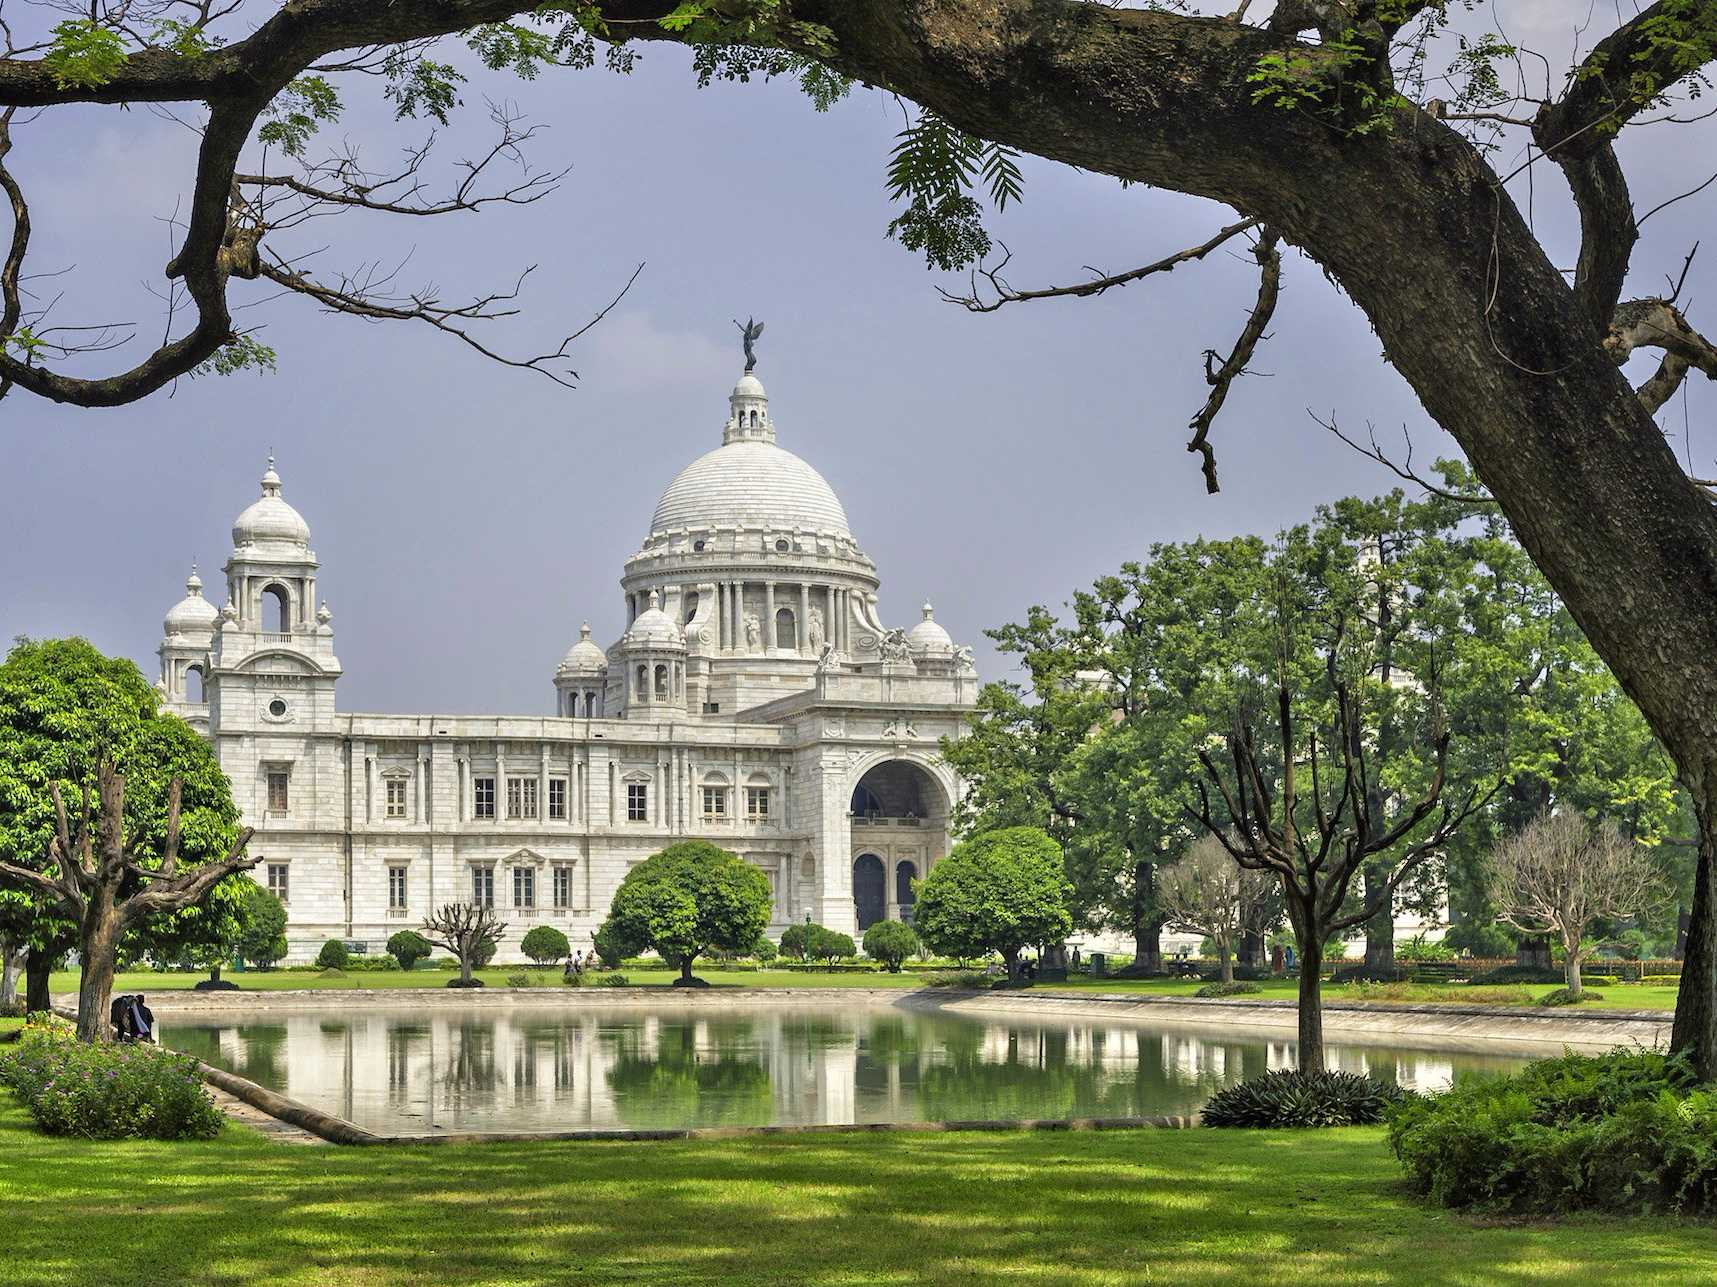 visit to victoria memorial Nangi head to victoria memorial and eden gardens—just two of the popular sights around nangi.